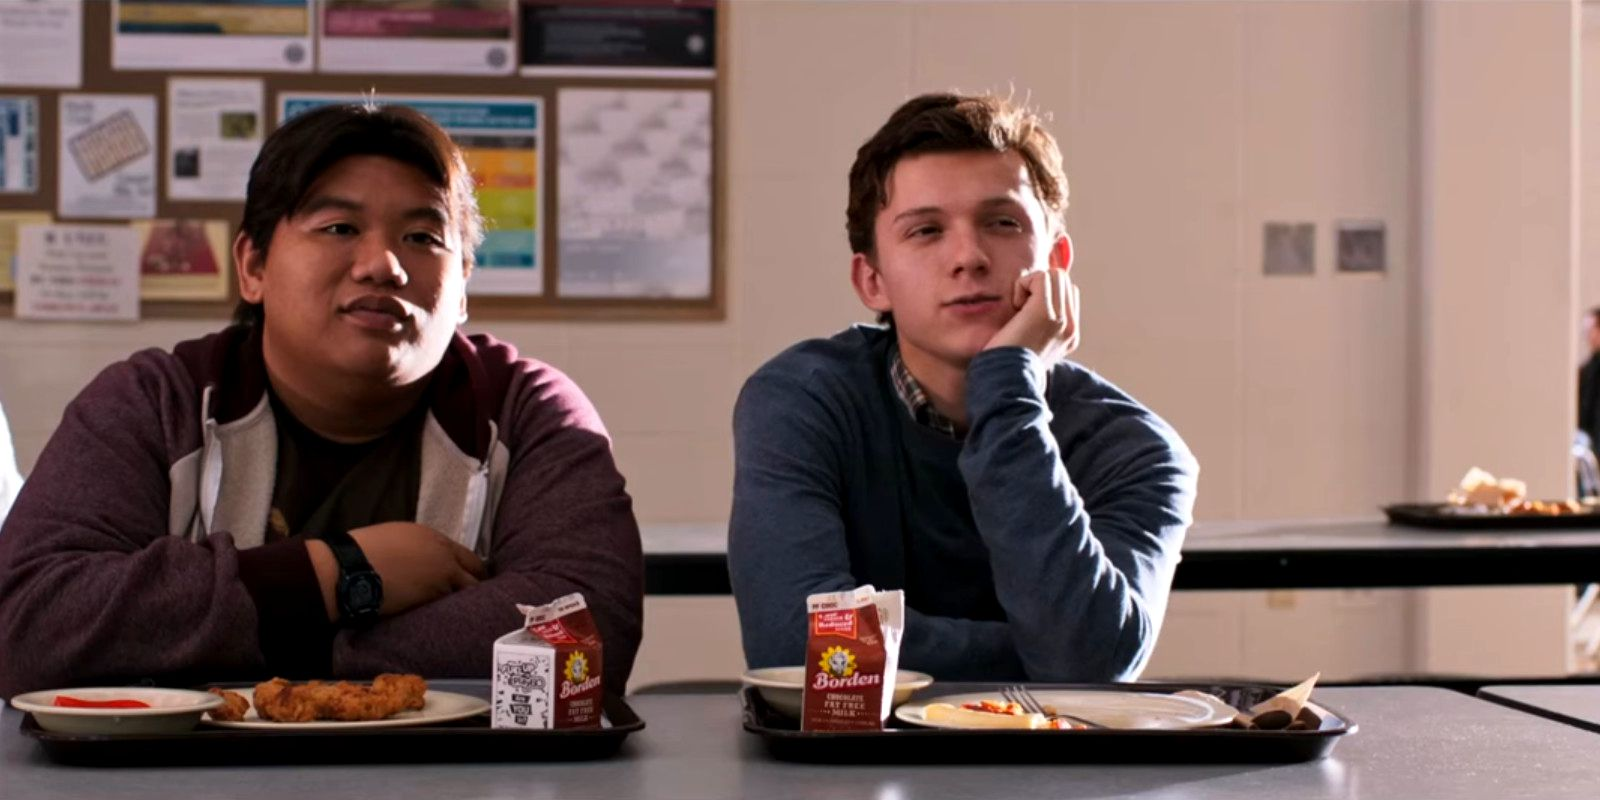 Spider-Man Homecoming - Peter and Ned